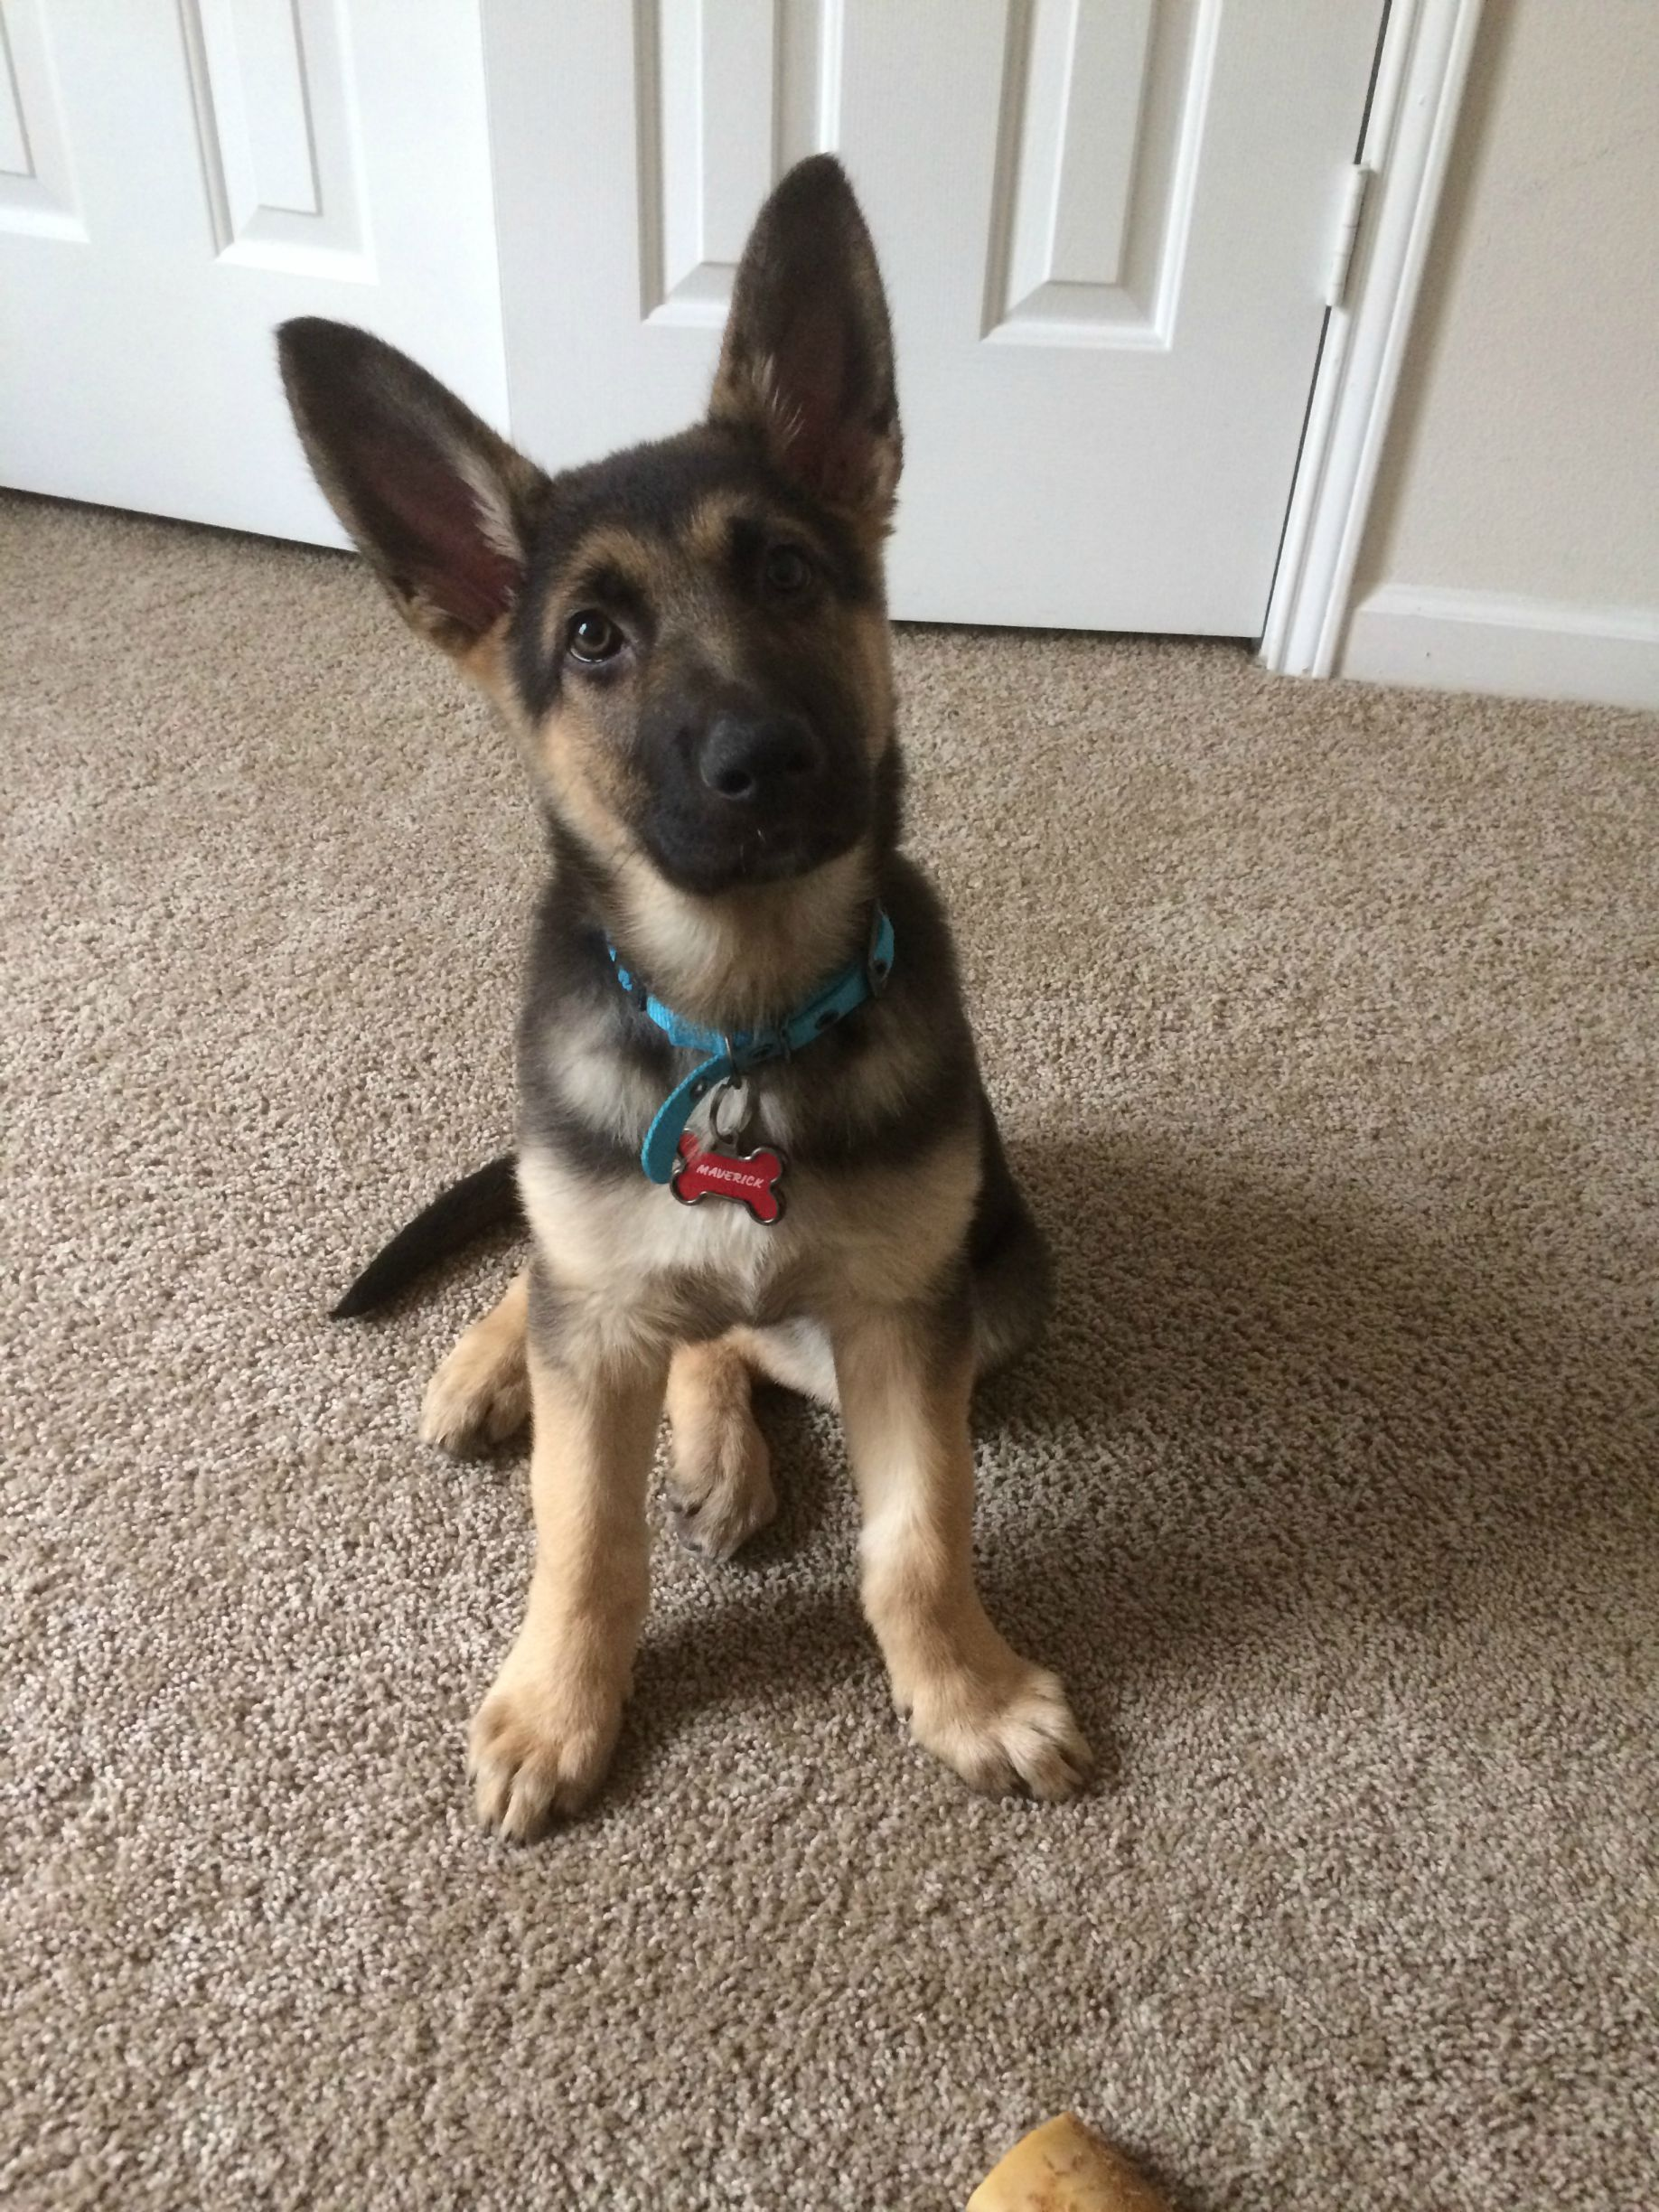 His ears stood up this week! Meet Maverick German